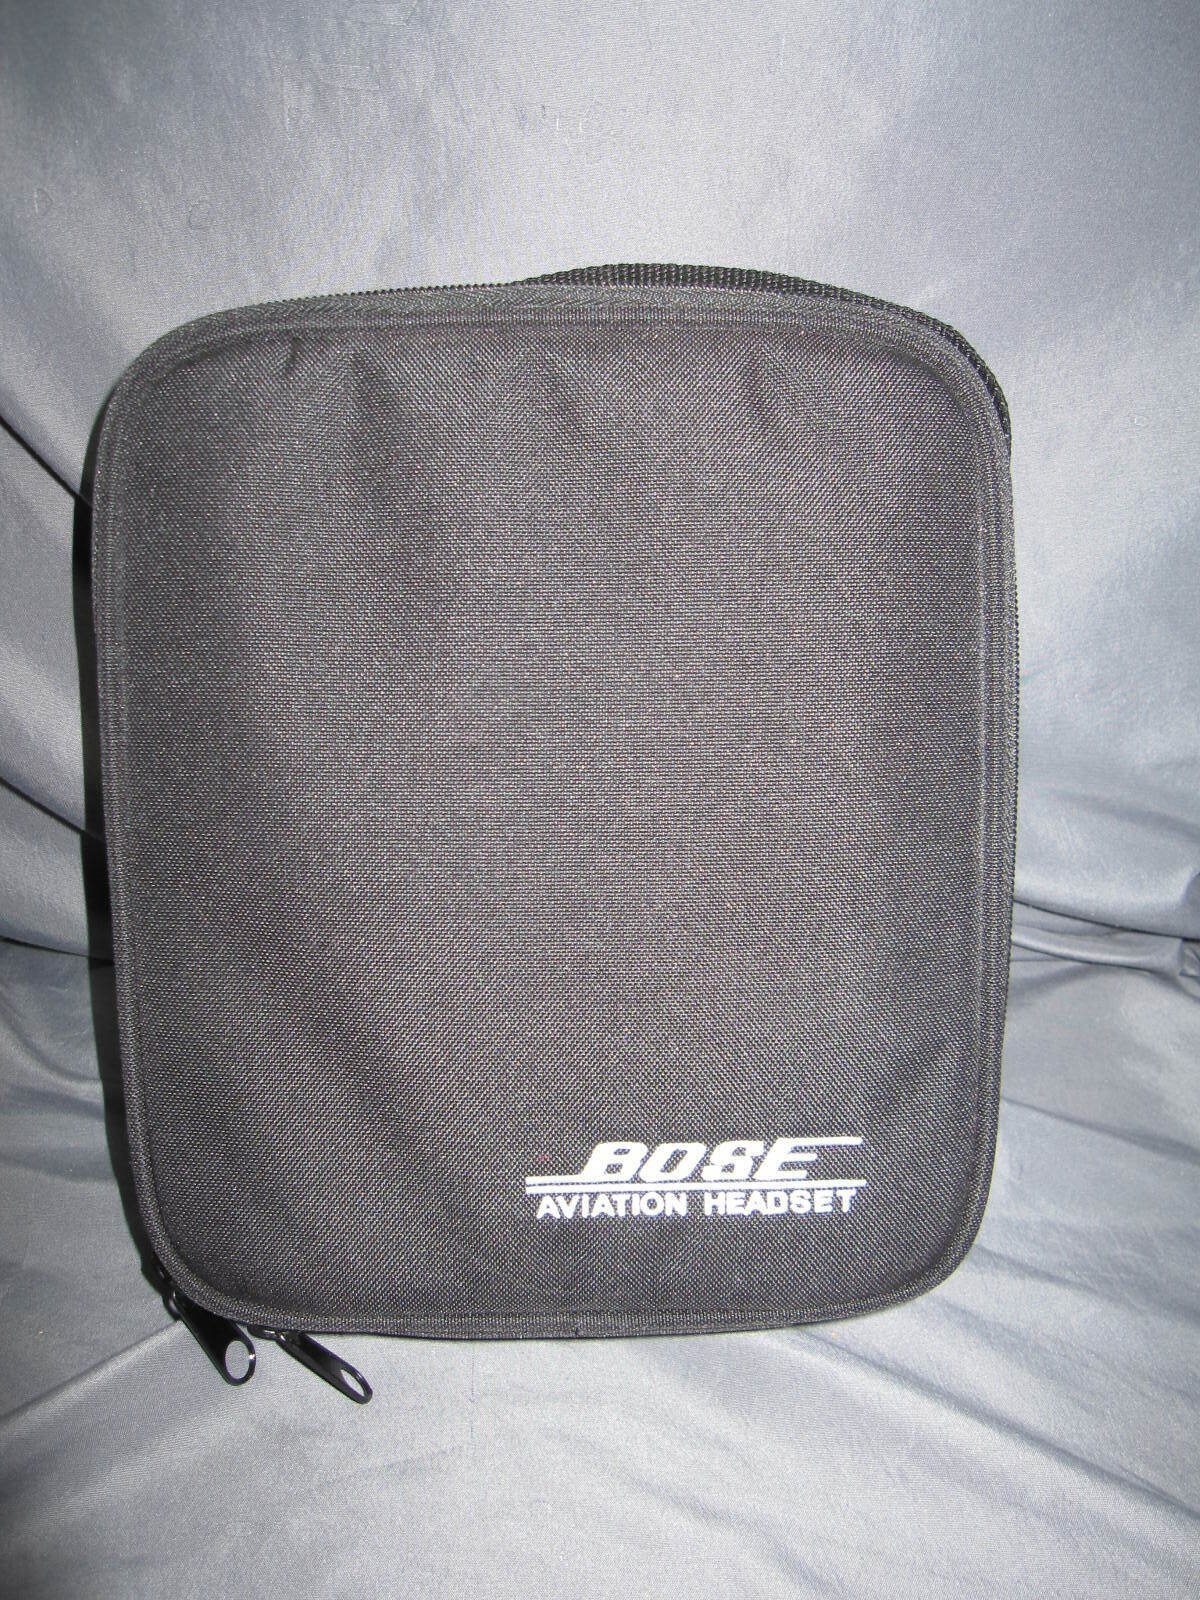 Bose Aviation Headset Carry Case Bag - Never Used Genuine Bose